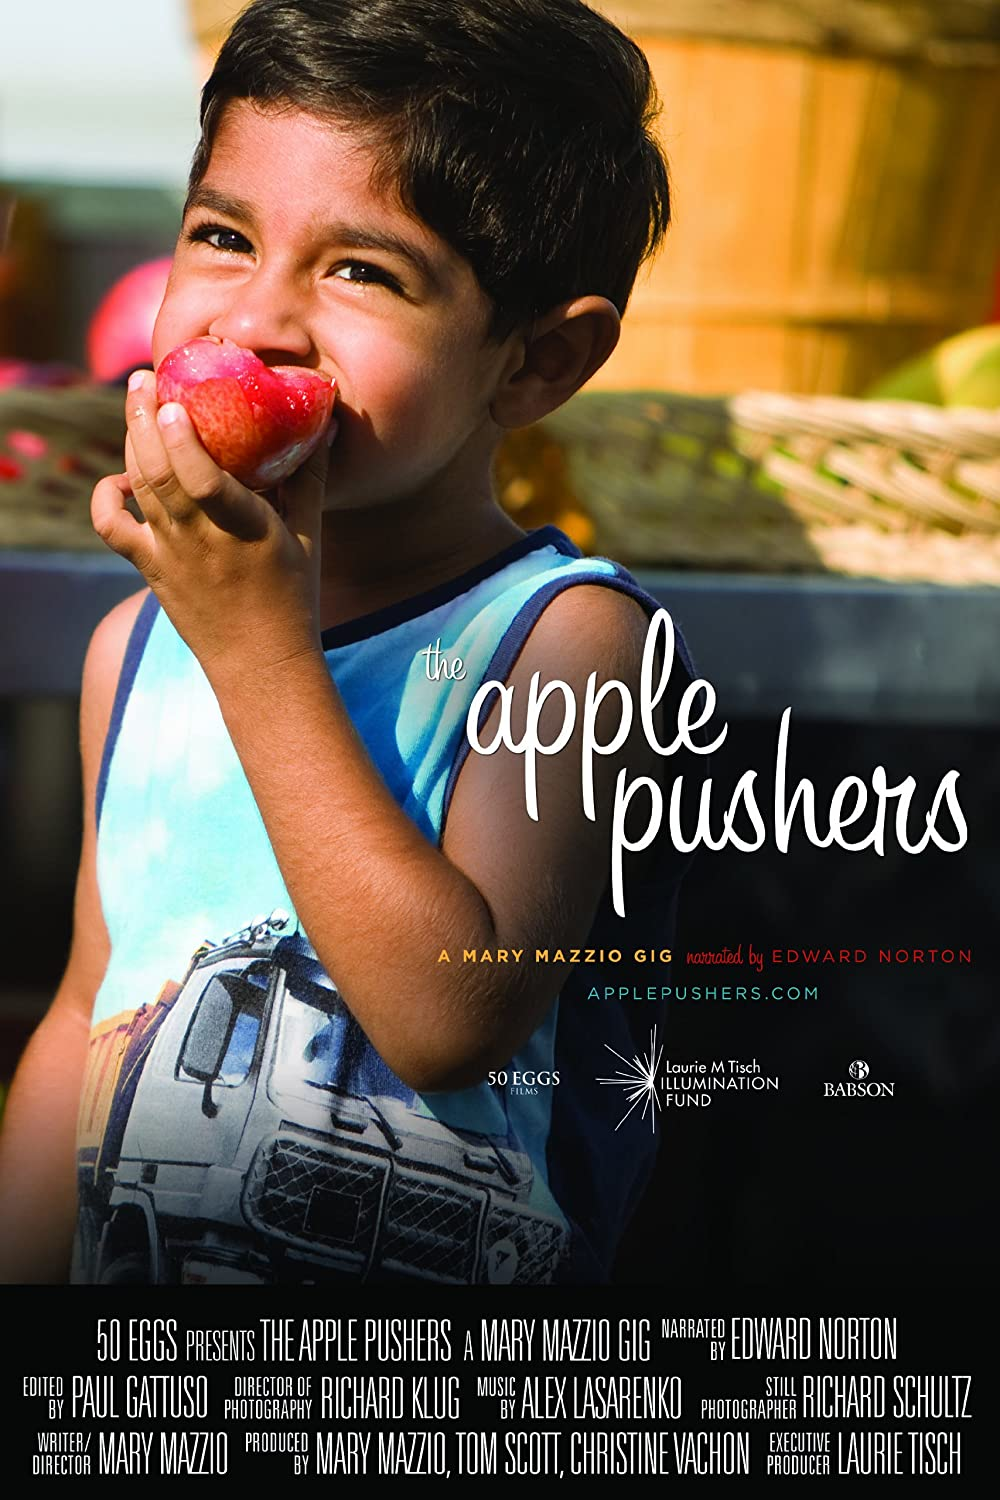 The Apple Pushers (private in-home use version)